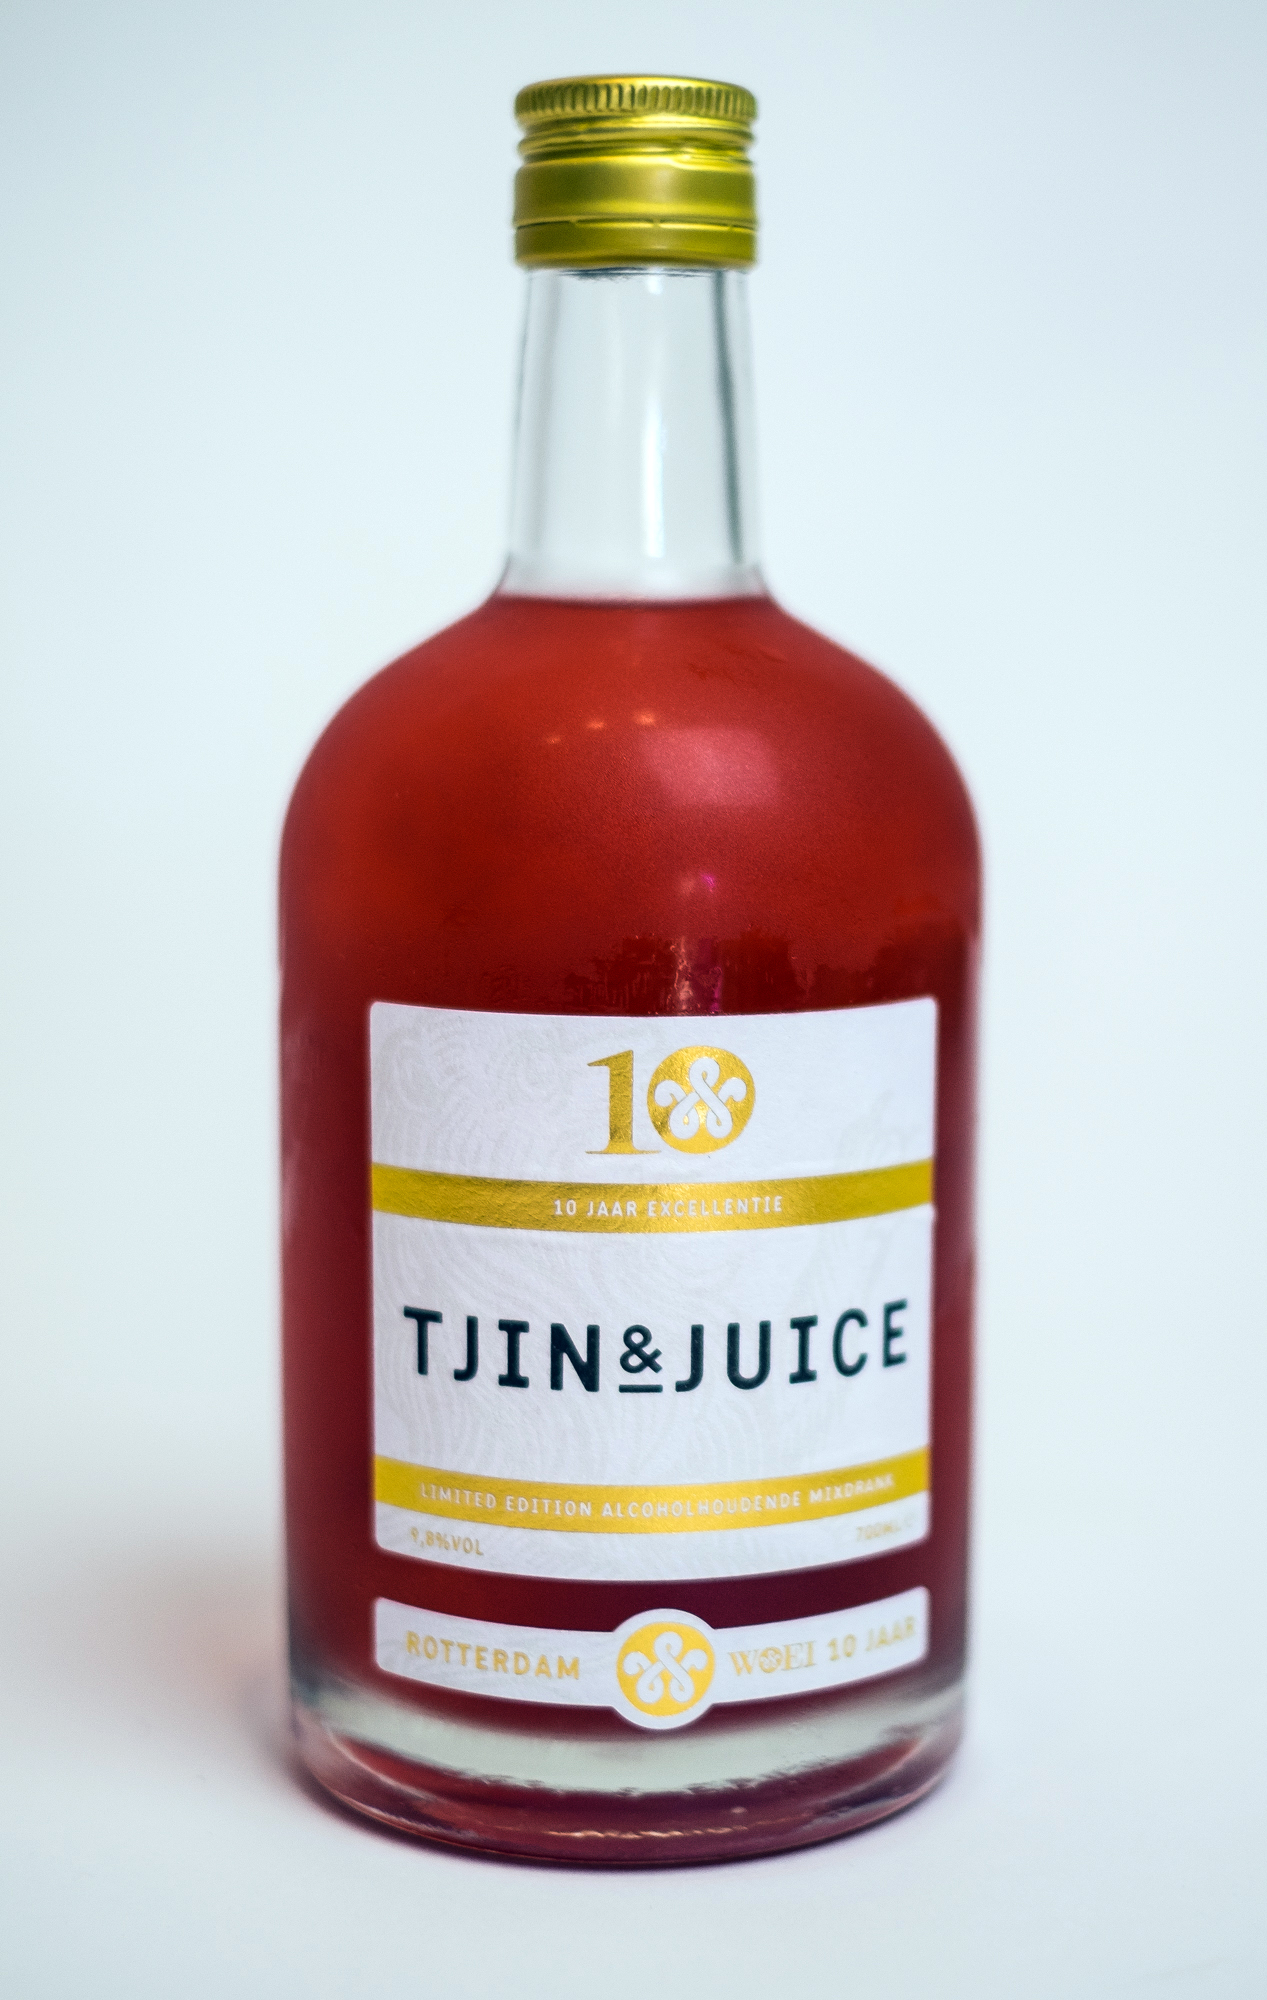 Woei – Tjin & Juice – limited edition alcoholic drink